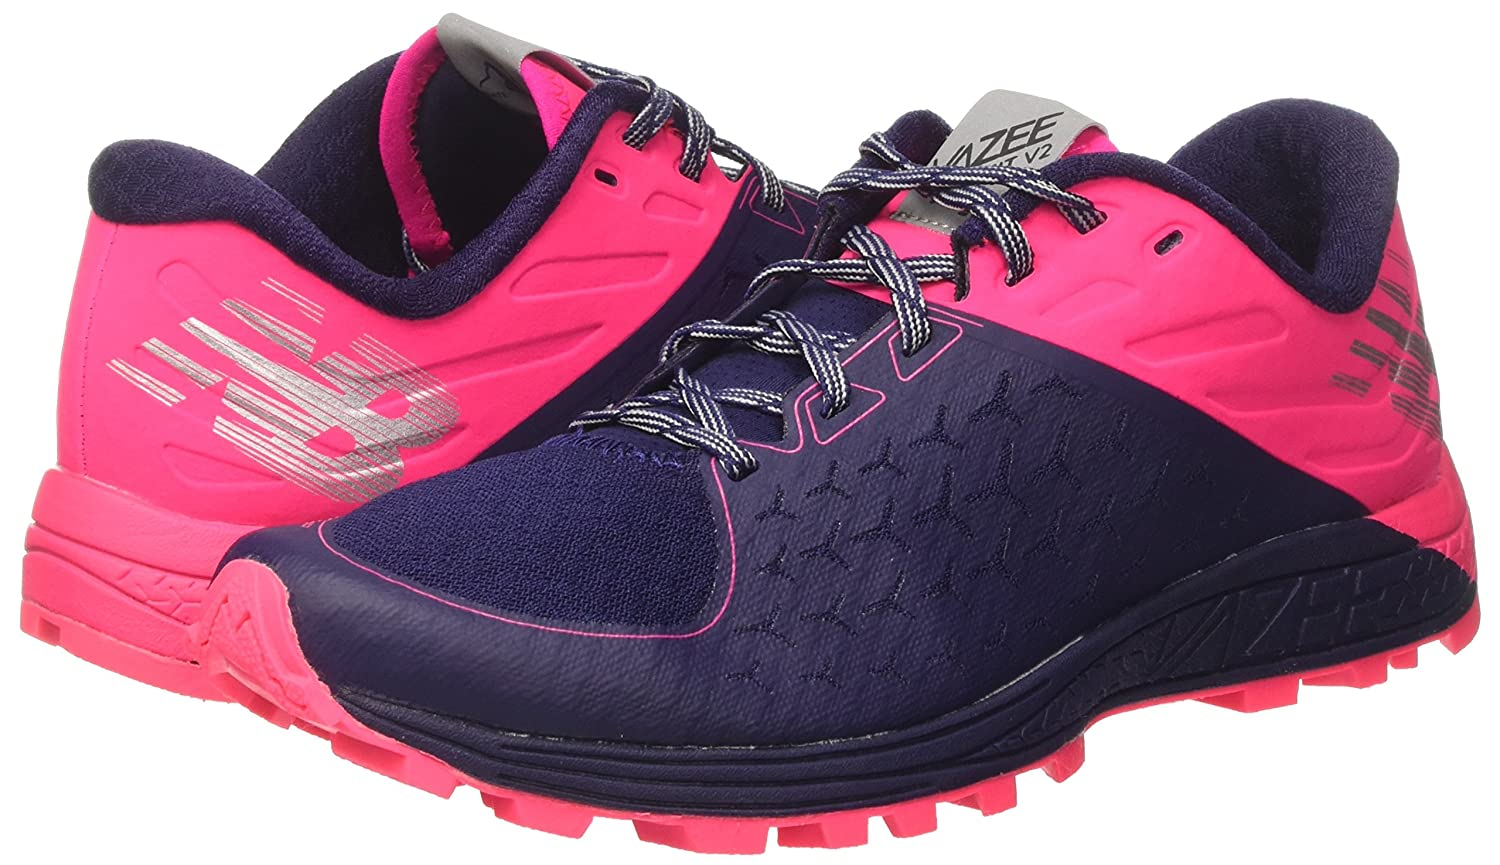 New Balance Women's Vazee Summit V2 Running Shoe Trail Runner B01LWZGFME 8.5 B(M) US|Dark Denim/Alpha Pink